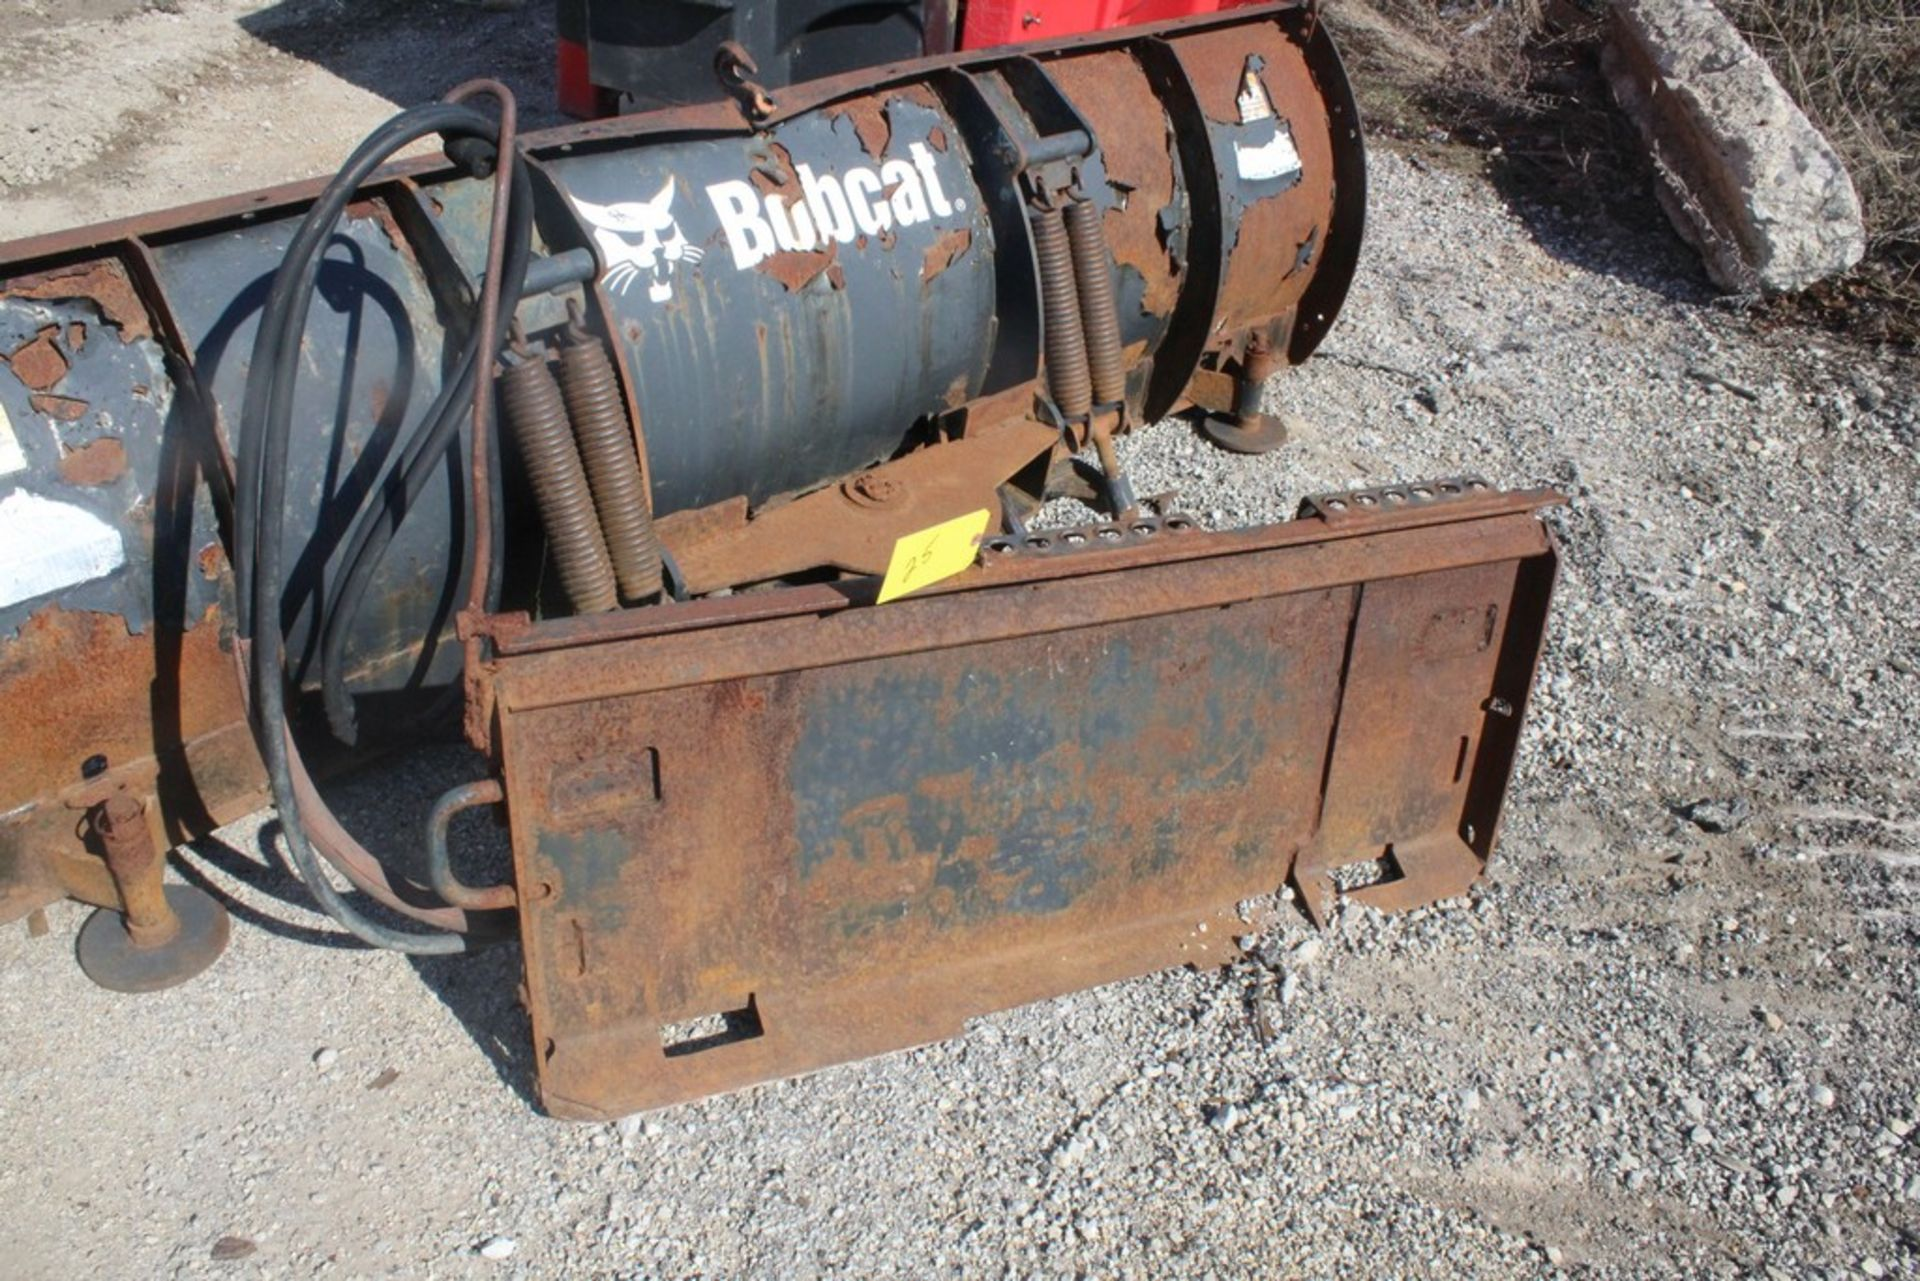 2007 BOBCAST 96-IN. MODEL 96 SNOWBLADE HYDRAULIC SNOW PLOW ATTACHMENT S/N: 683803630, 96-IN. - Image 4 of 4